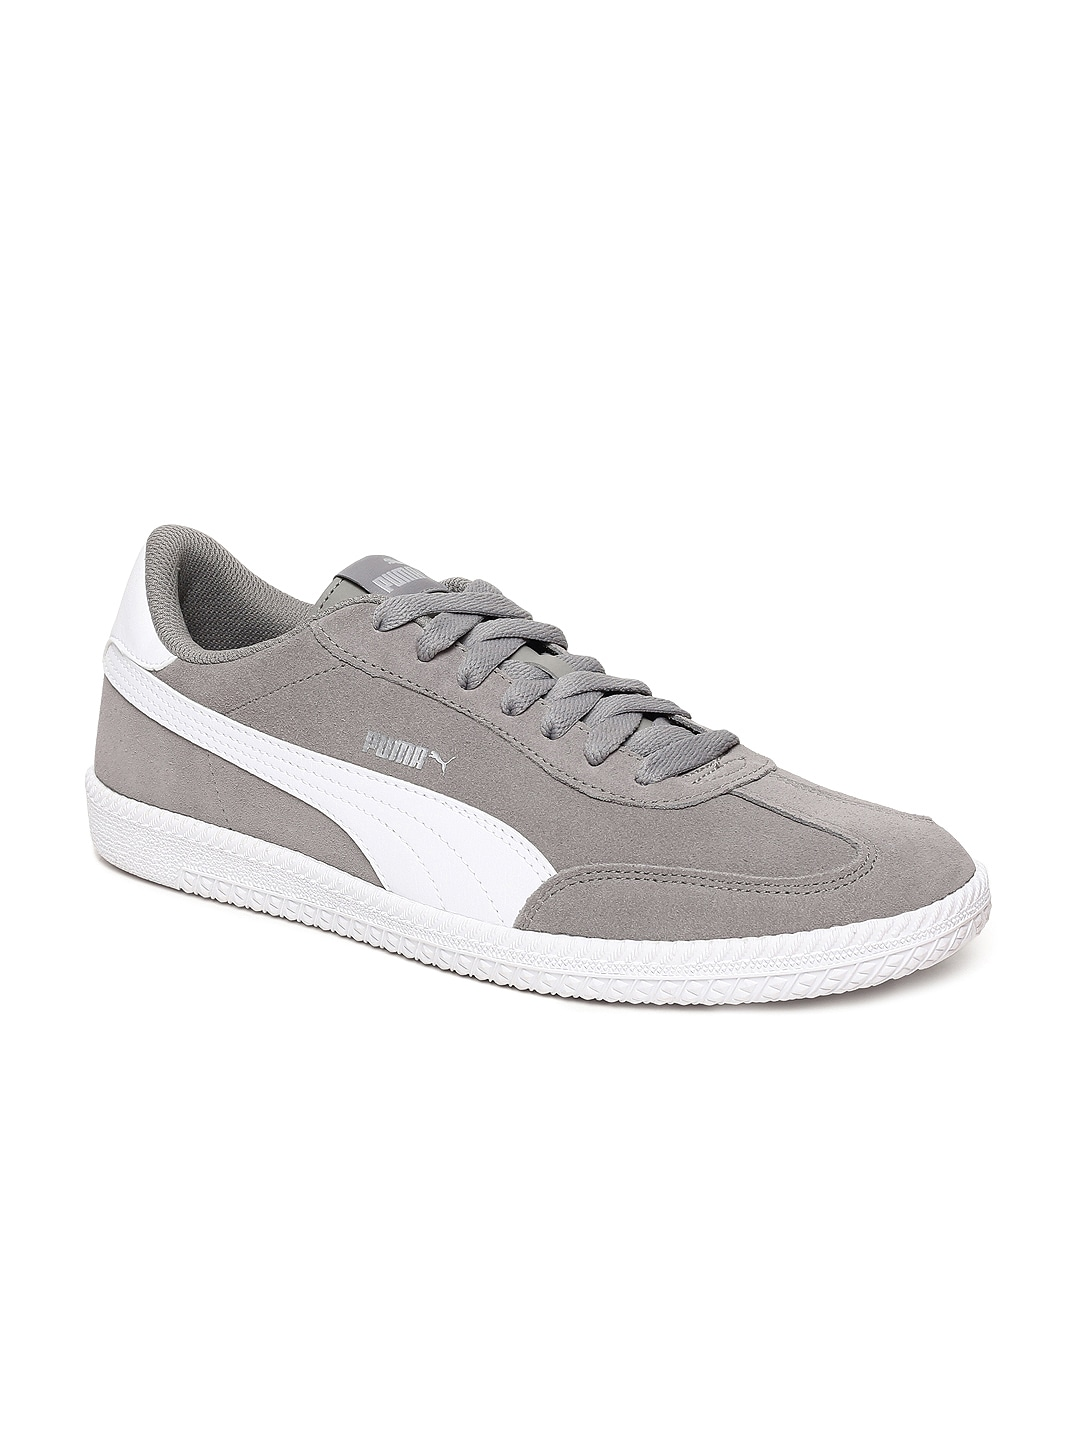 0cb78471c91 Puma Grey Casual Shoes - Buy Puma Grey Casual Shoes online in India